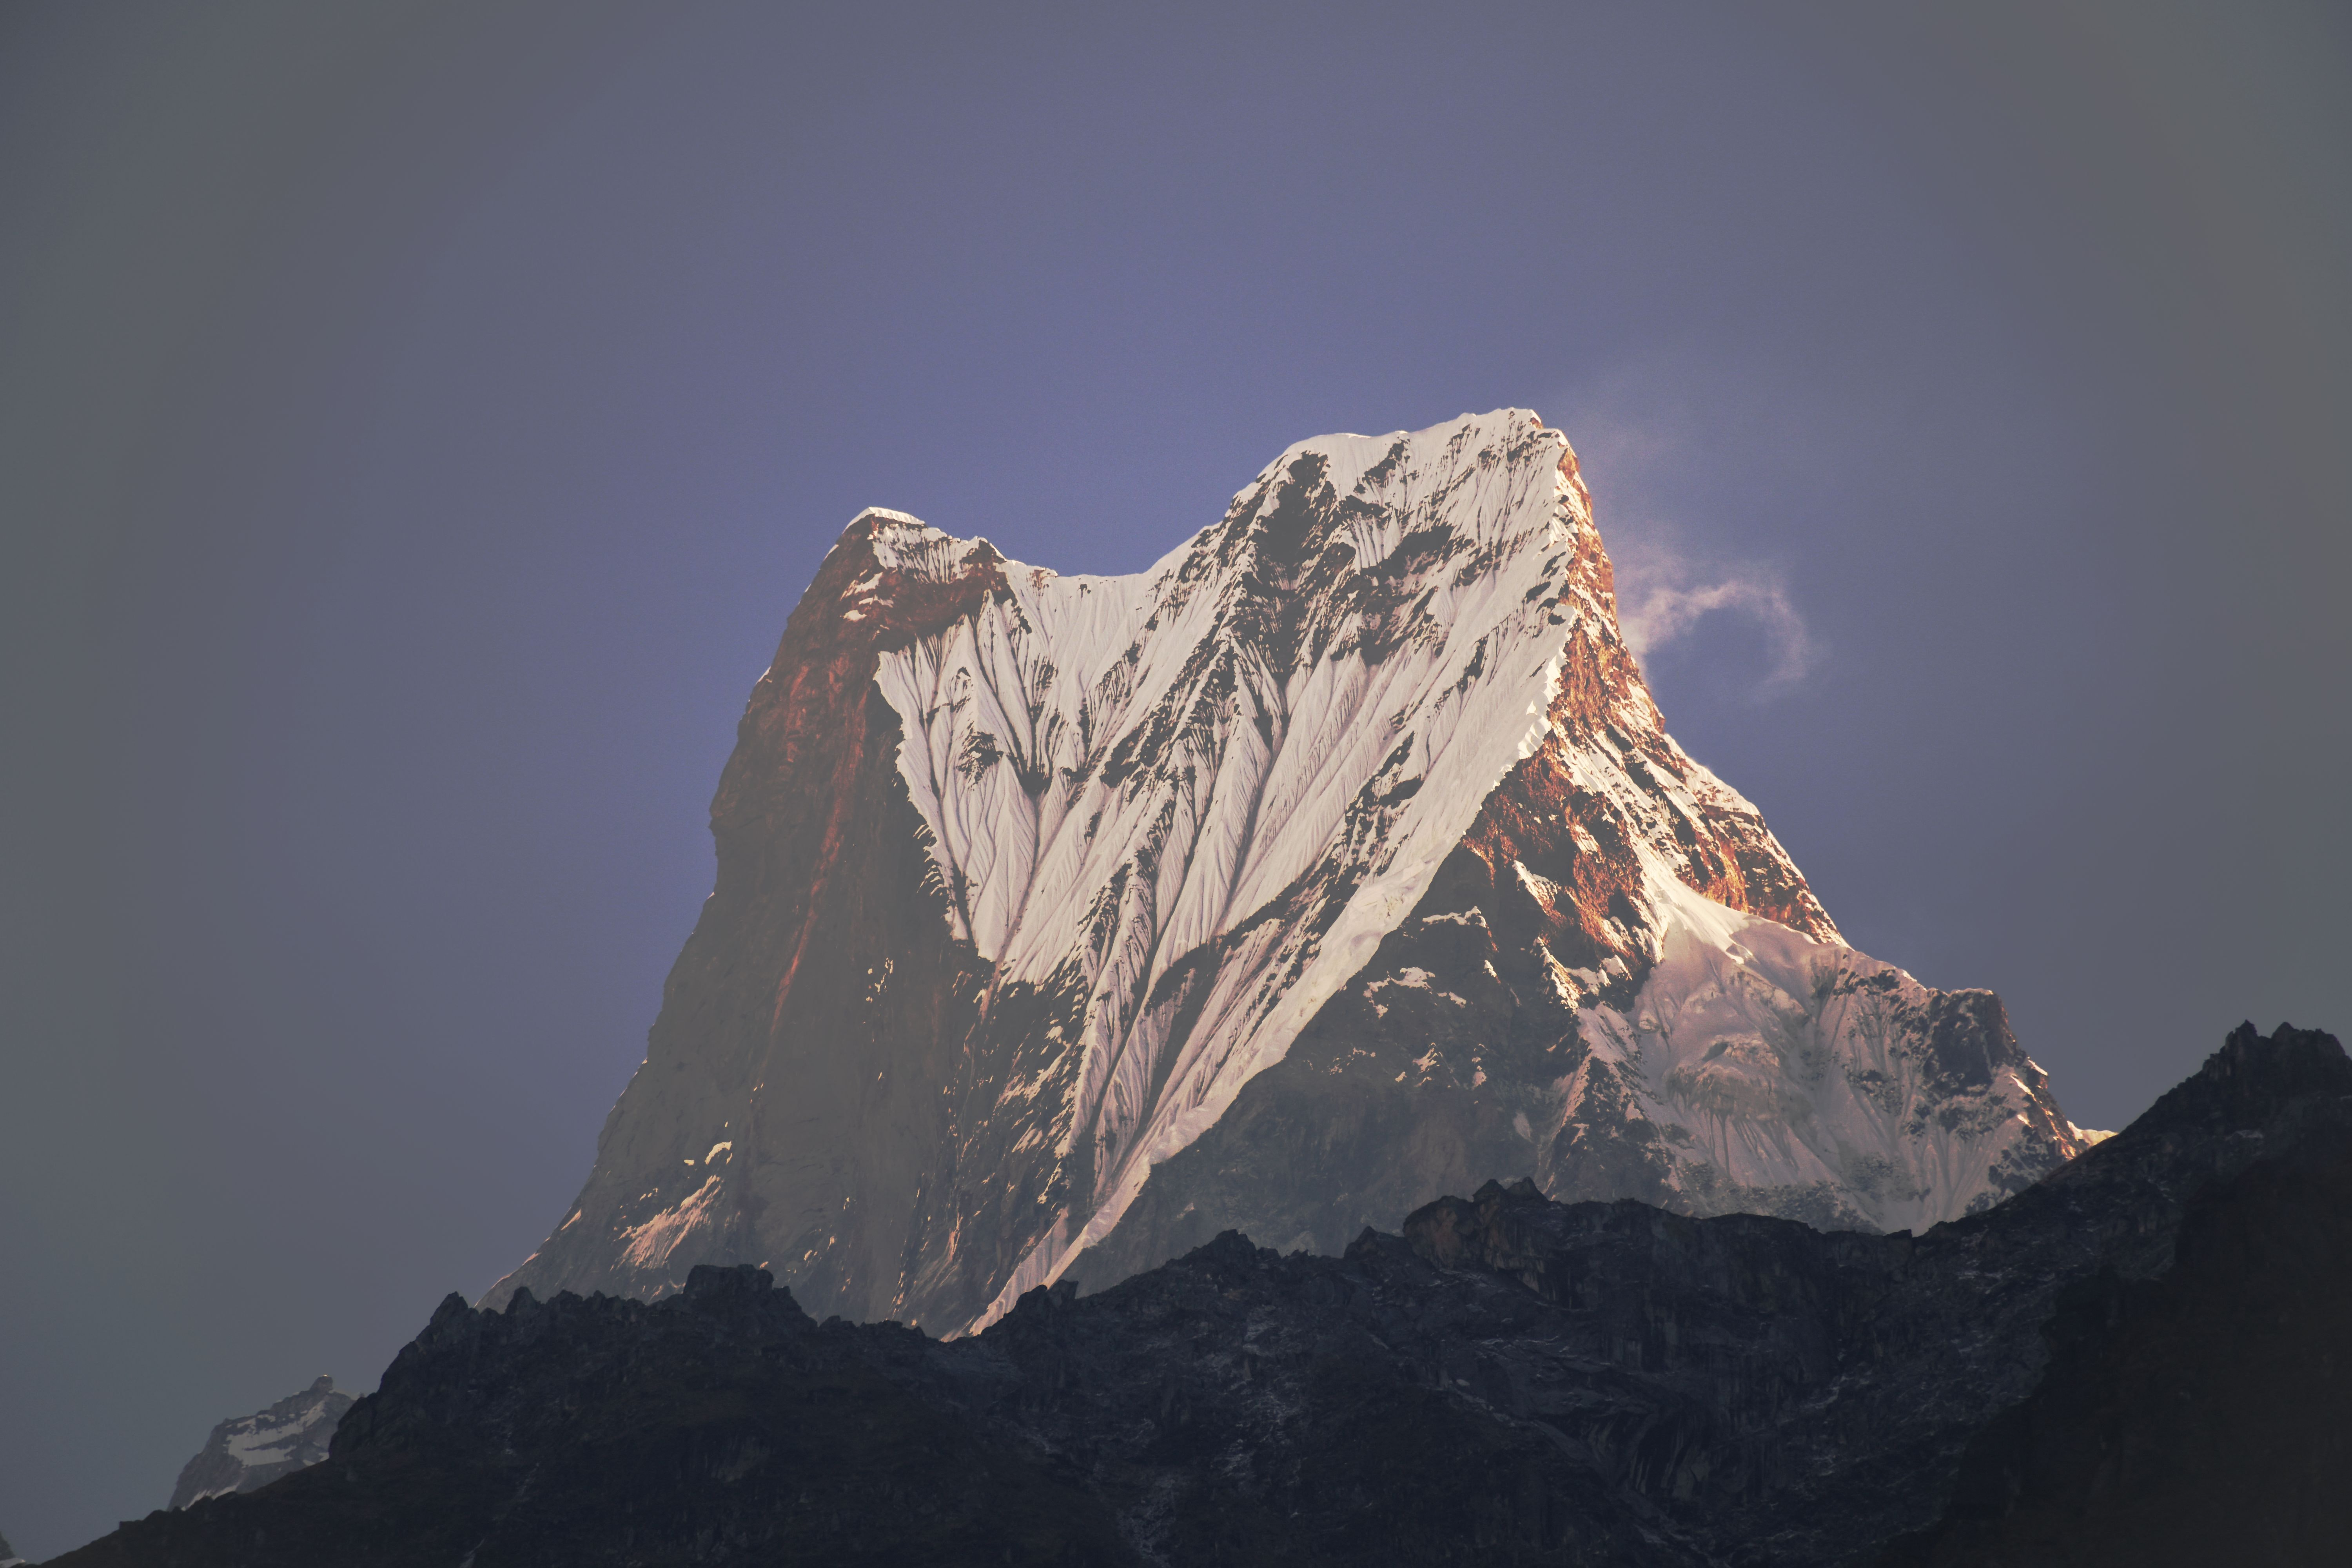 focus photo of mountain covered with snow during daytime